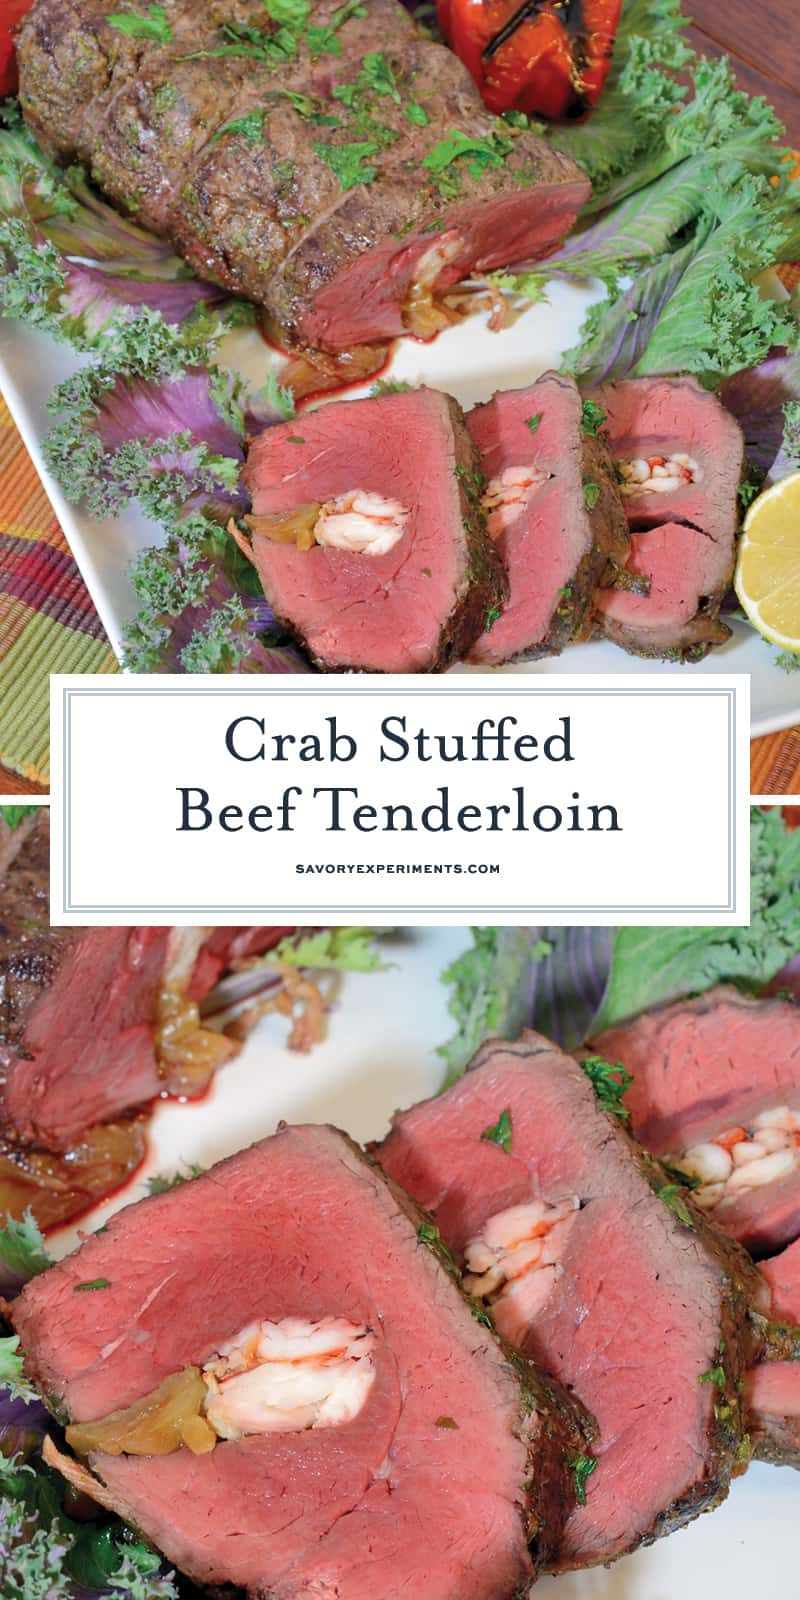 Crab Stuffed Beef Tenderloin takes a tenderloin and fills the center with buttered crab and caramelized onions, then baked to perfection with a black pepper bark. #beeftenderloinrecipe www.savoryexperiments.com